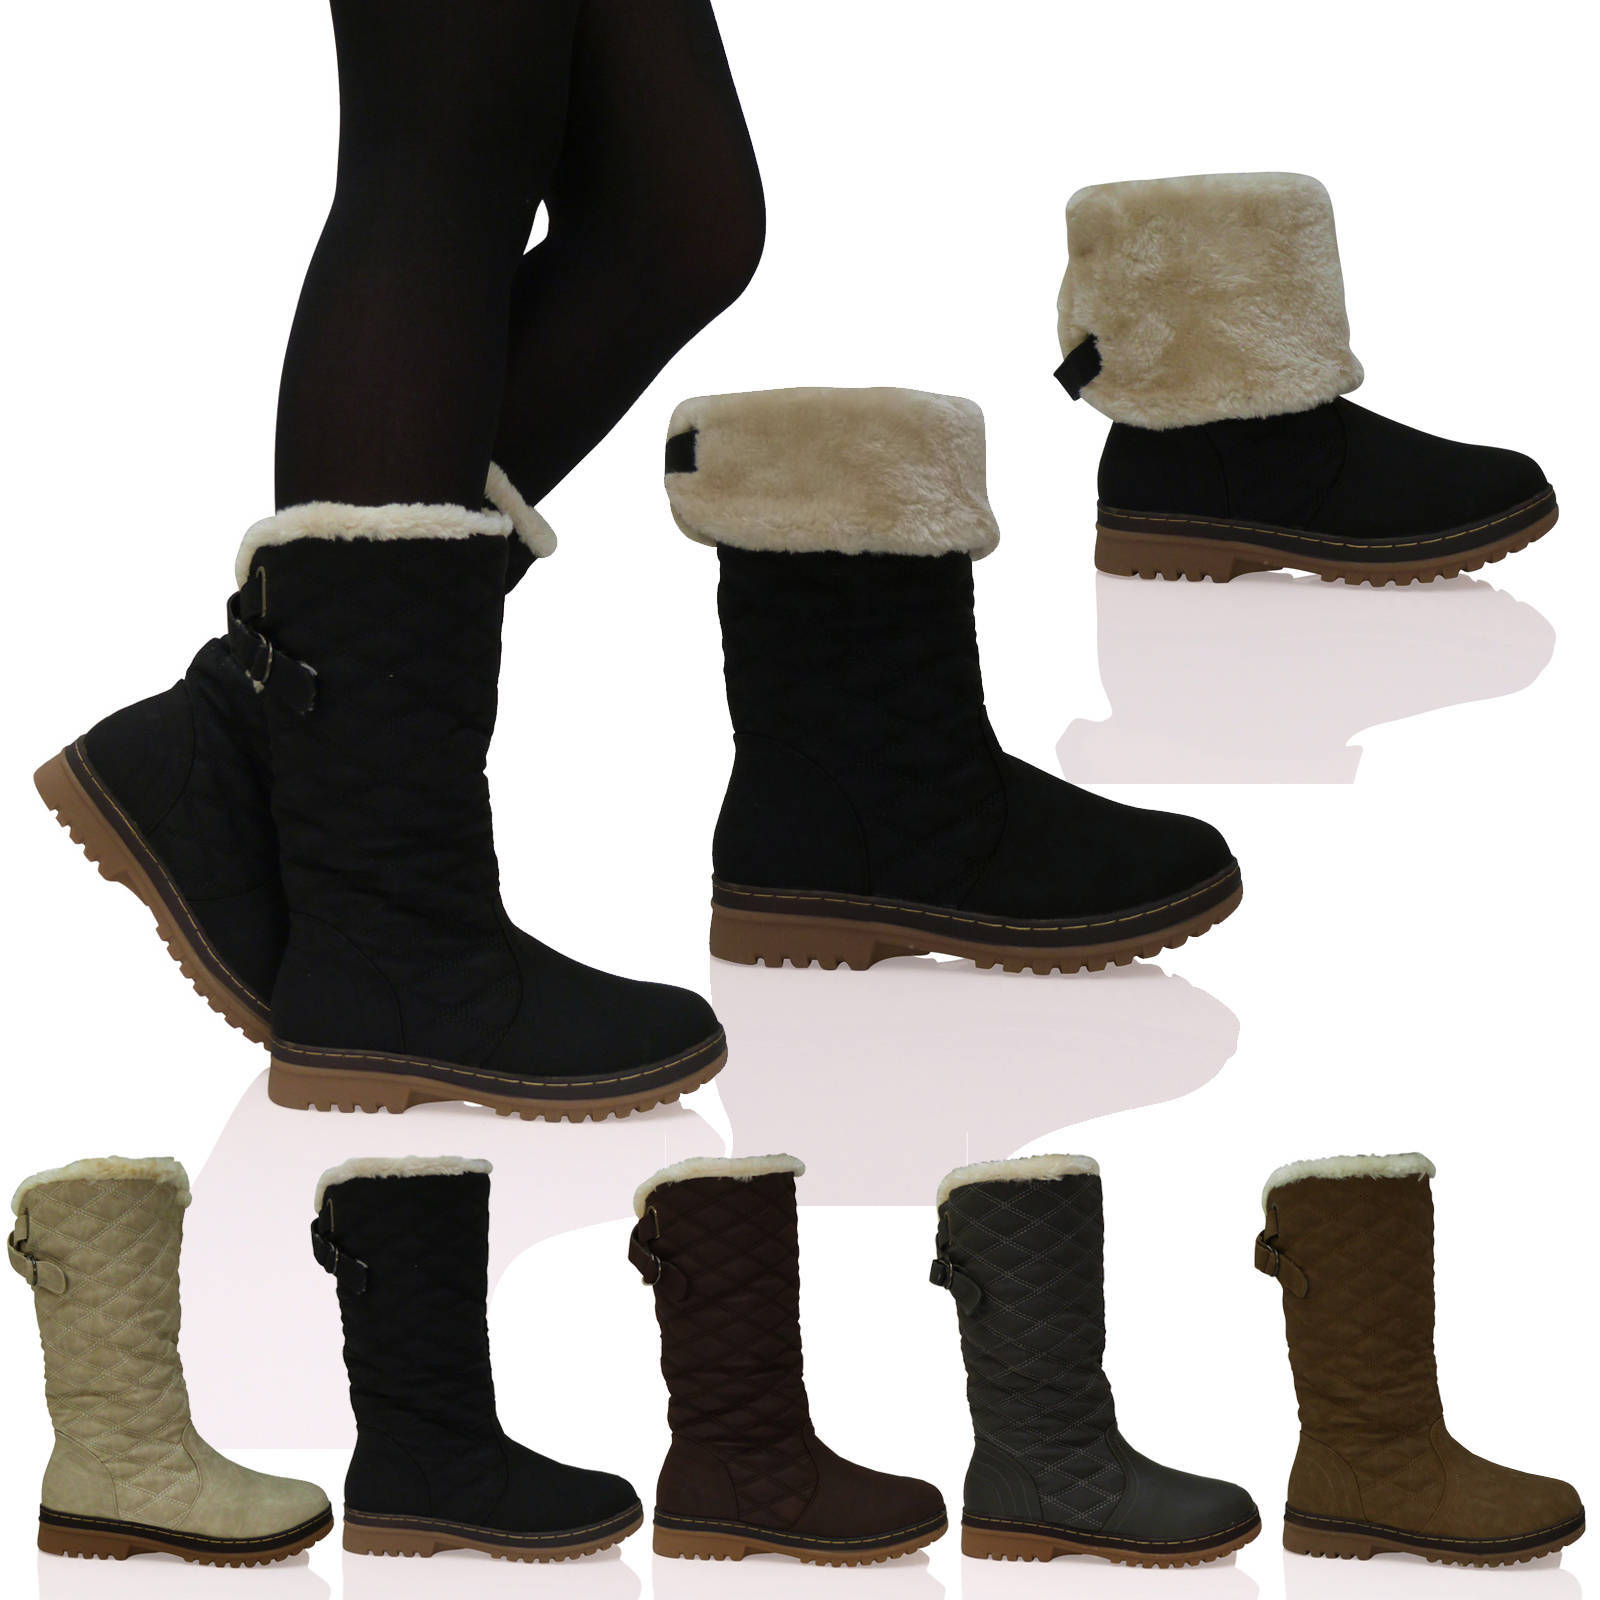 New Womens Ladies Quilted Faux Fur Lined Thick Sole Mid Calf Boots Shoes Size